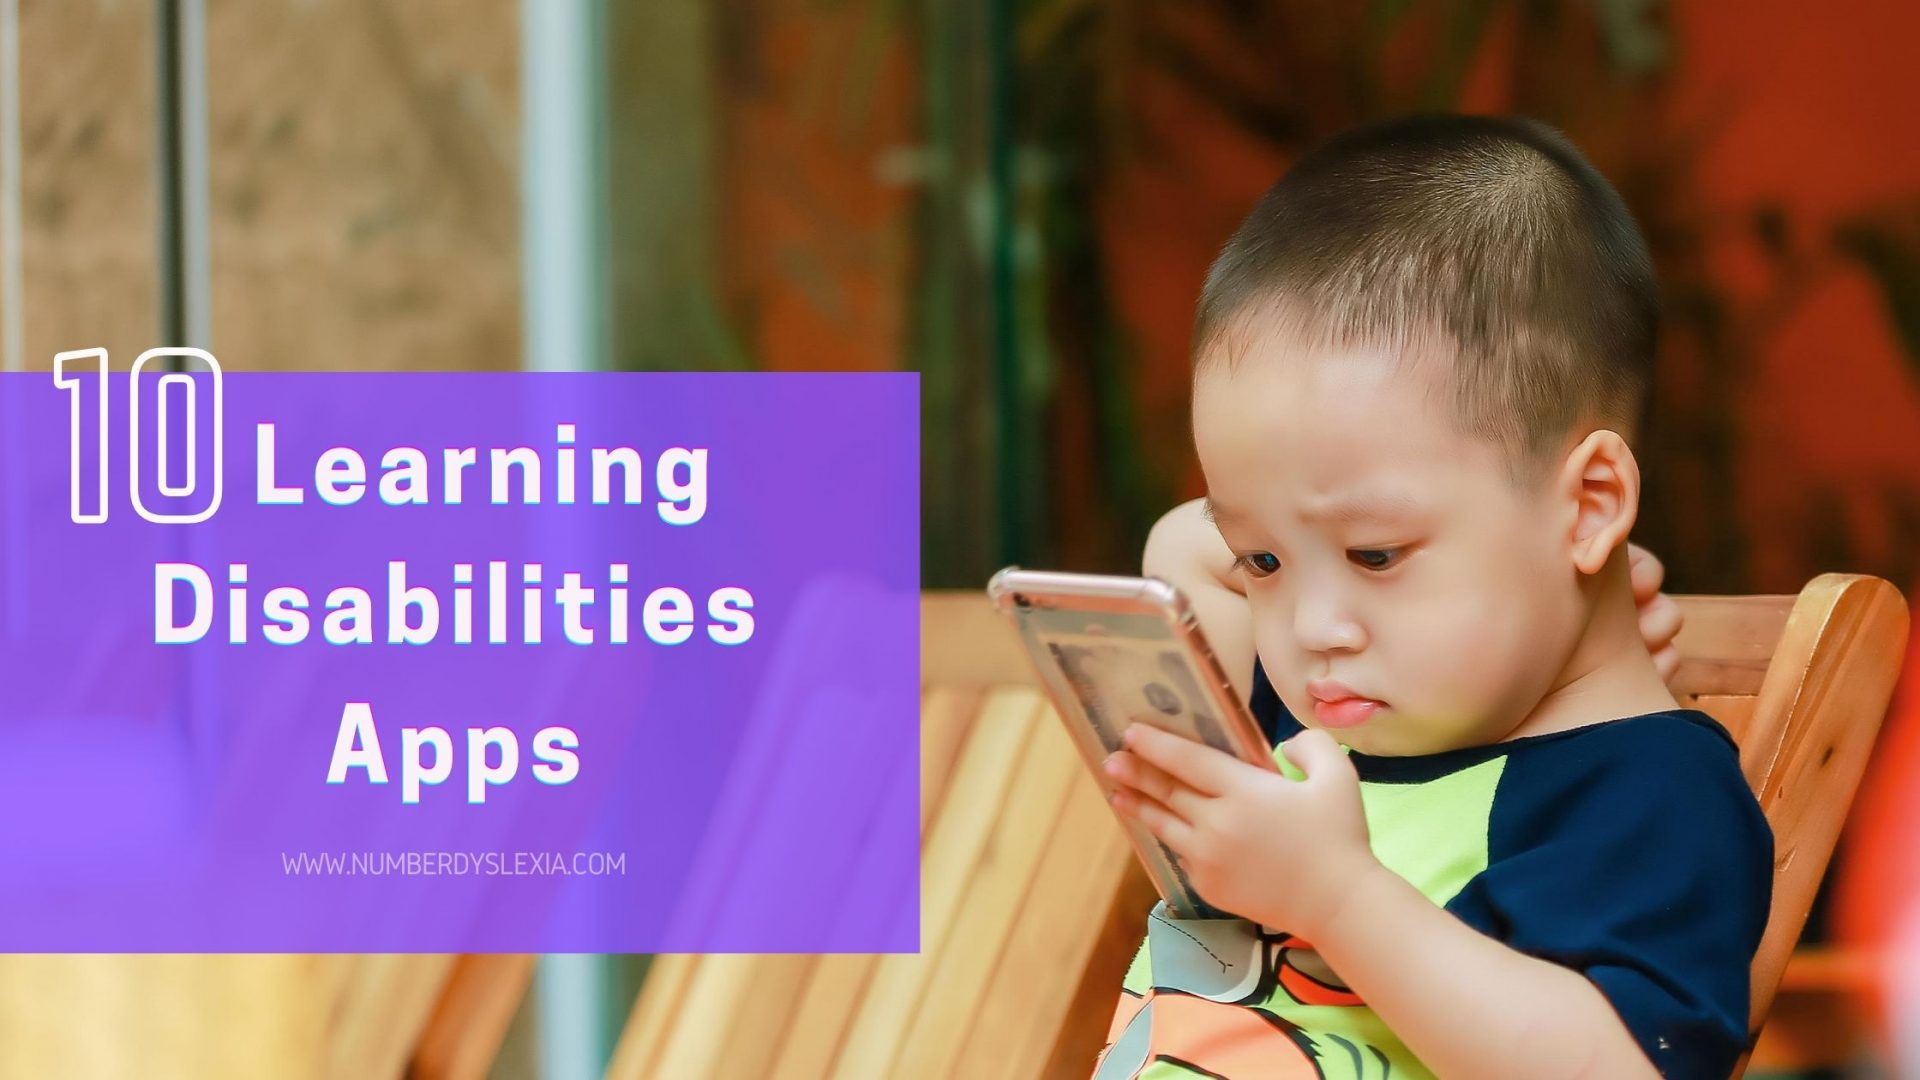 List of 10 helpful apps for learning disabilities